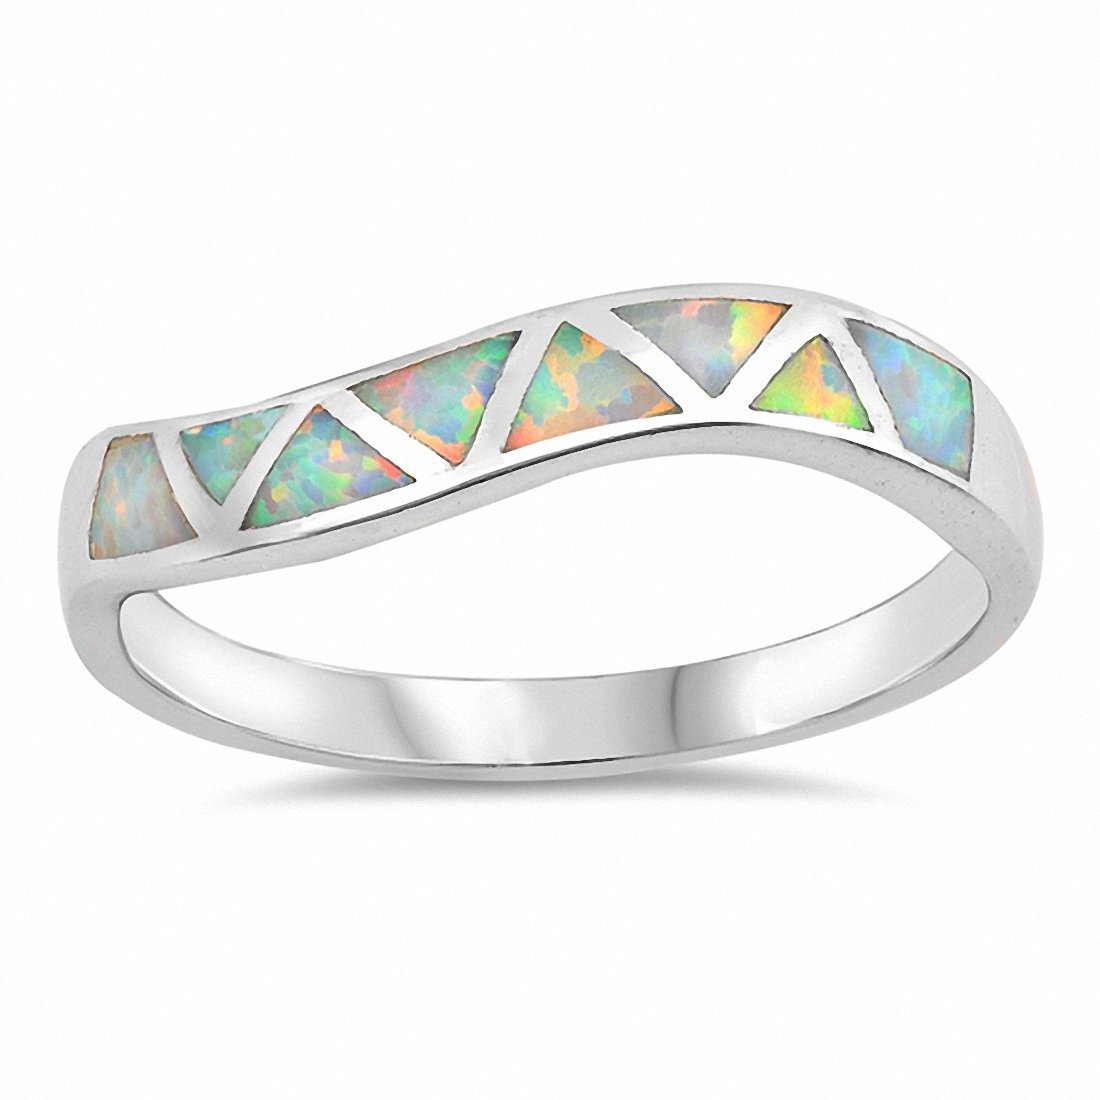 Fashion Half Eternity Design Created Opal Ring 925 Sterling Silver Choose Color